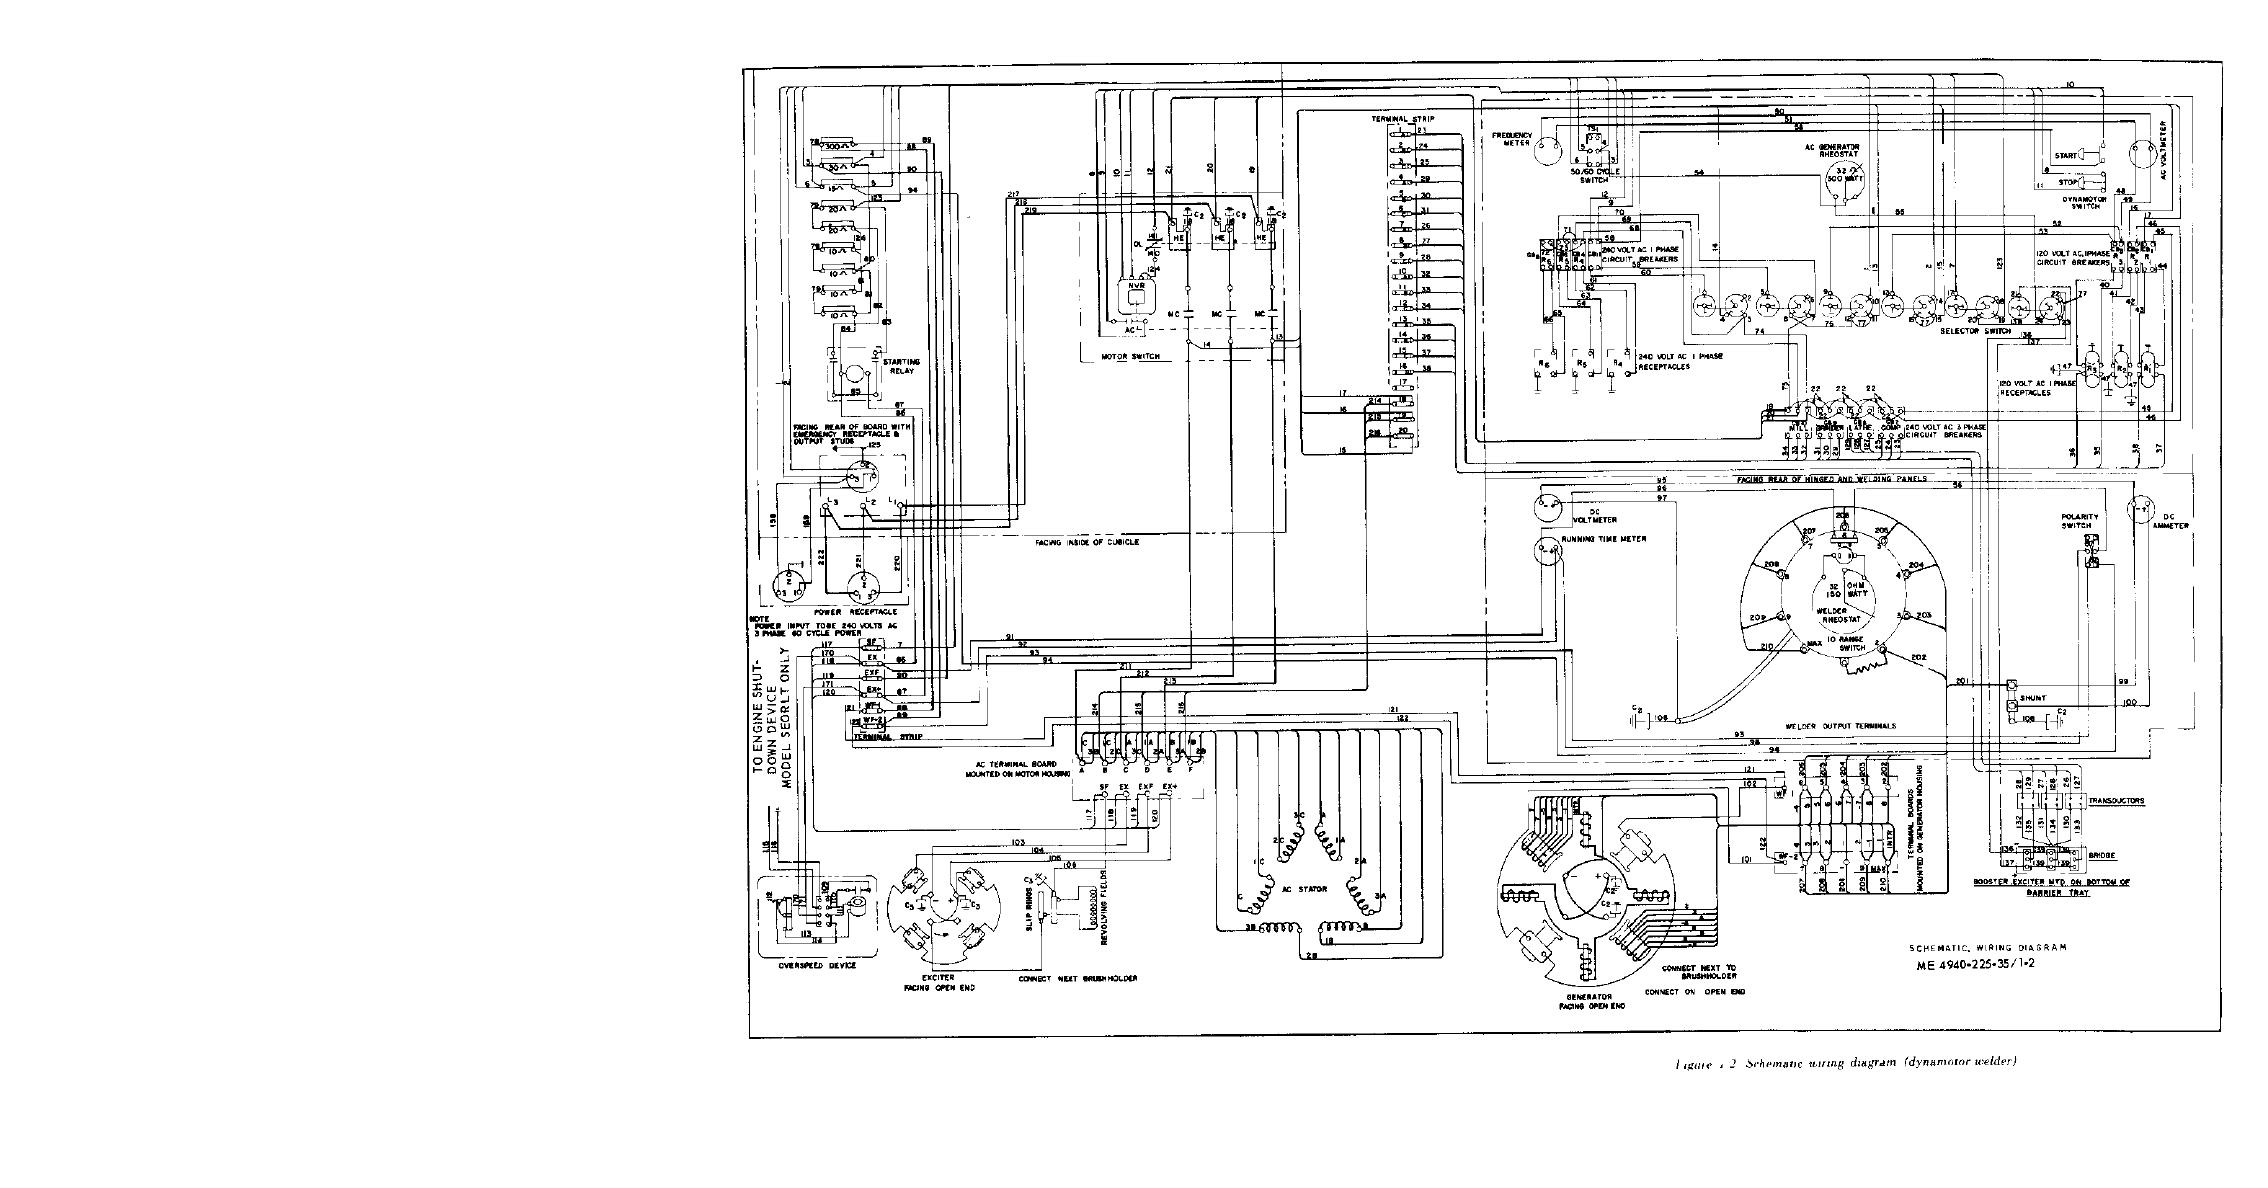 Lincoln Welder Ranger Motor Diagram The Portal And Forum Of Wiring Tig Welding Parts 225 Solution Your Rh Intexta Co Home Built